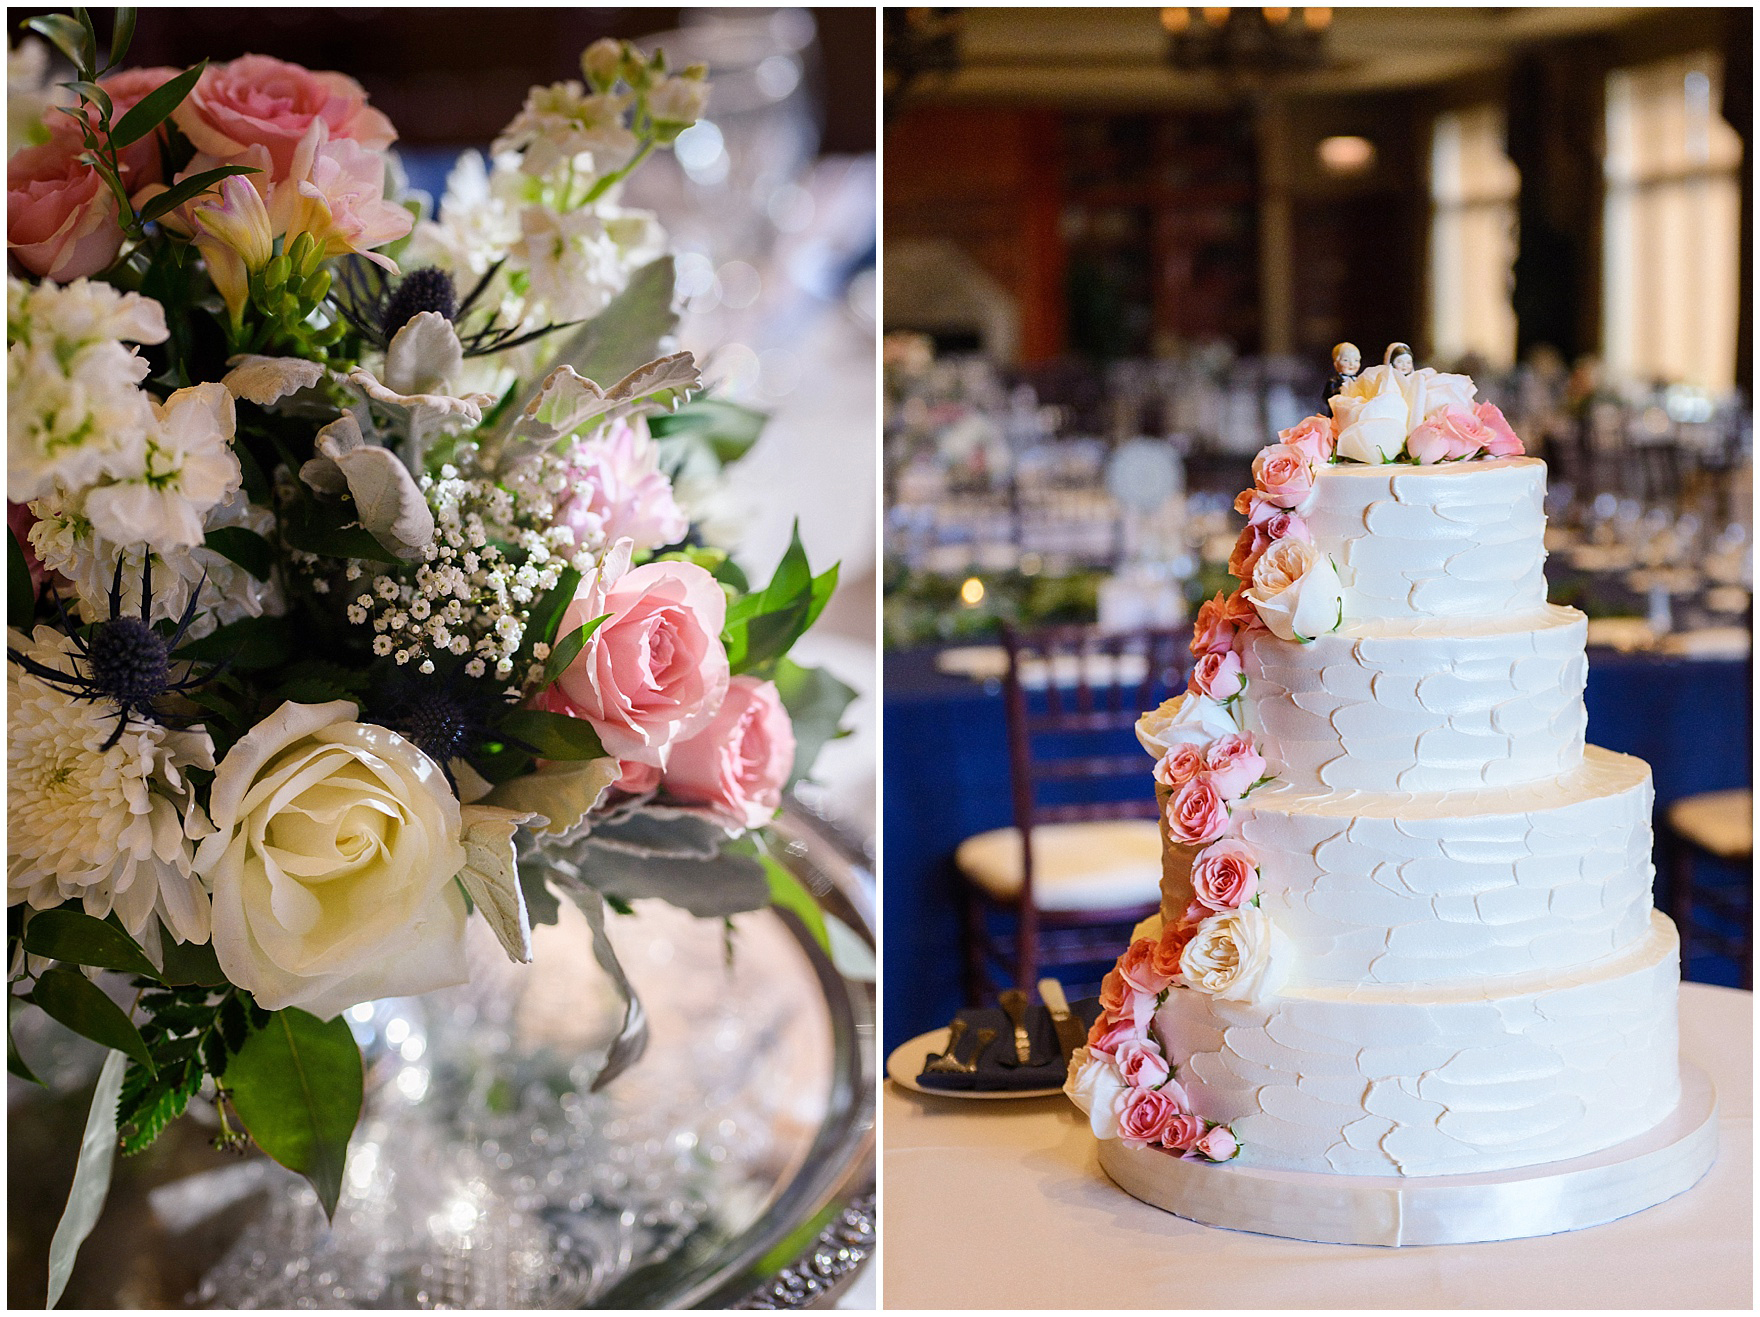 A tiered wedding cake with pink roses by Lovin Oven for a Biltmore Country Club Barrington wedding.